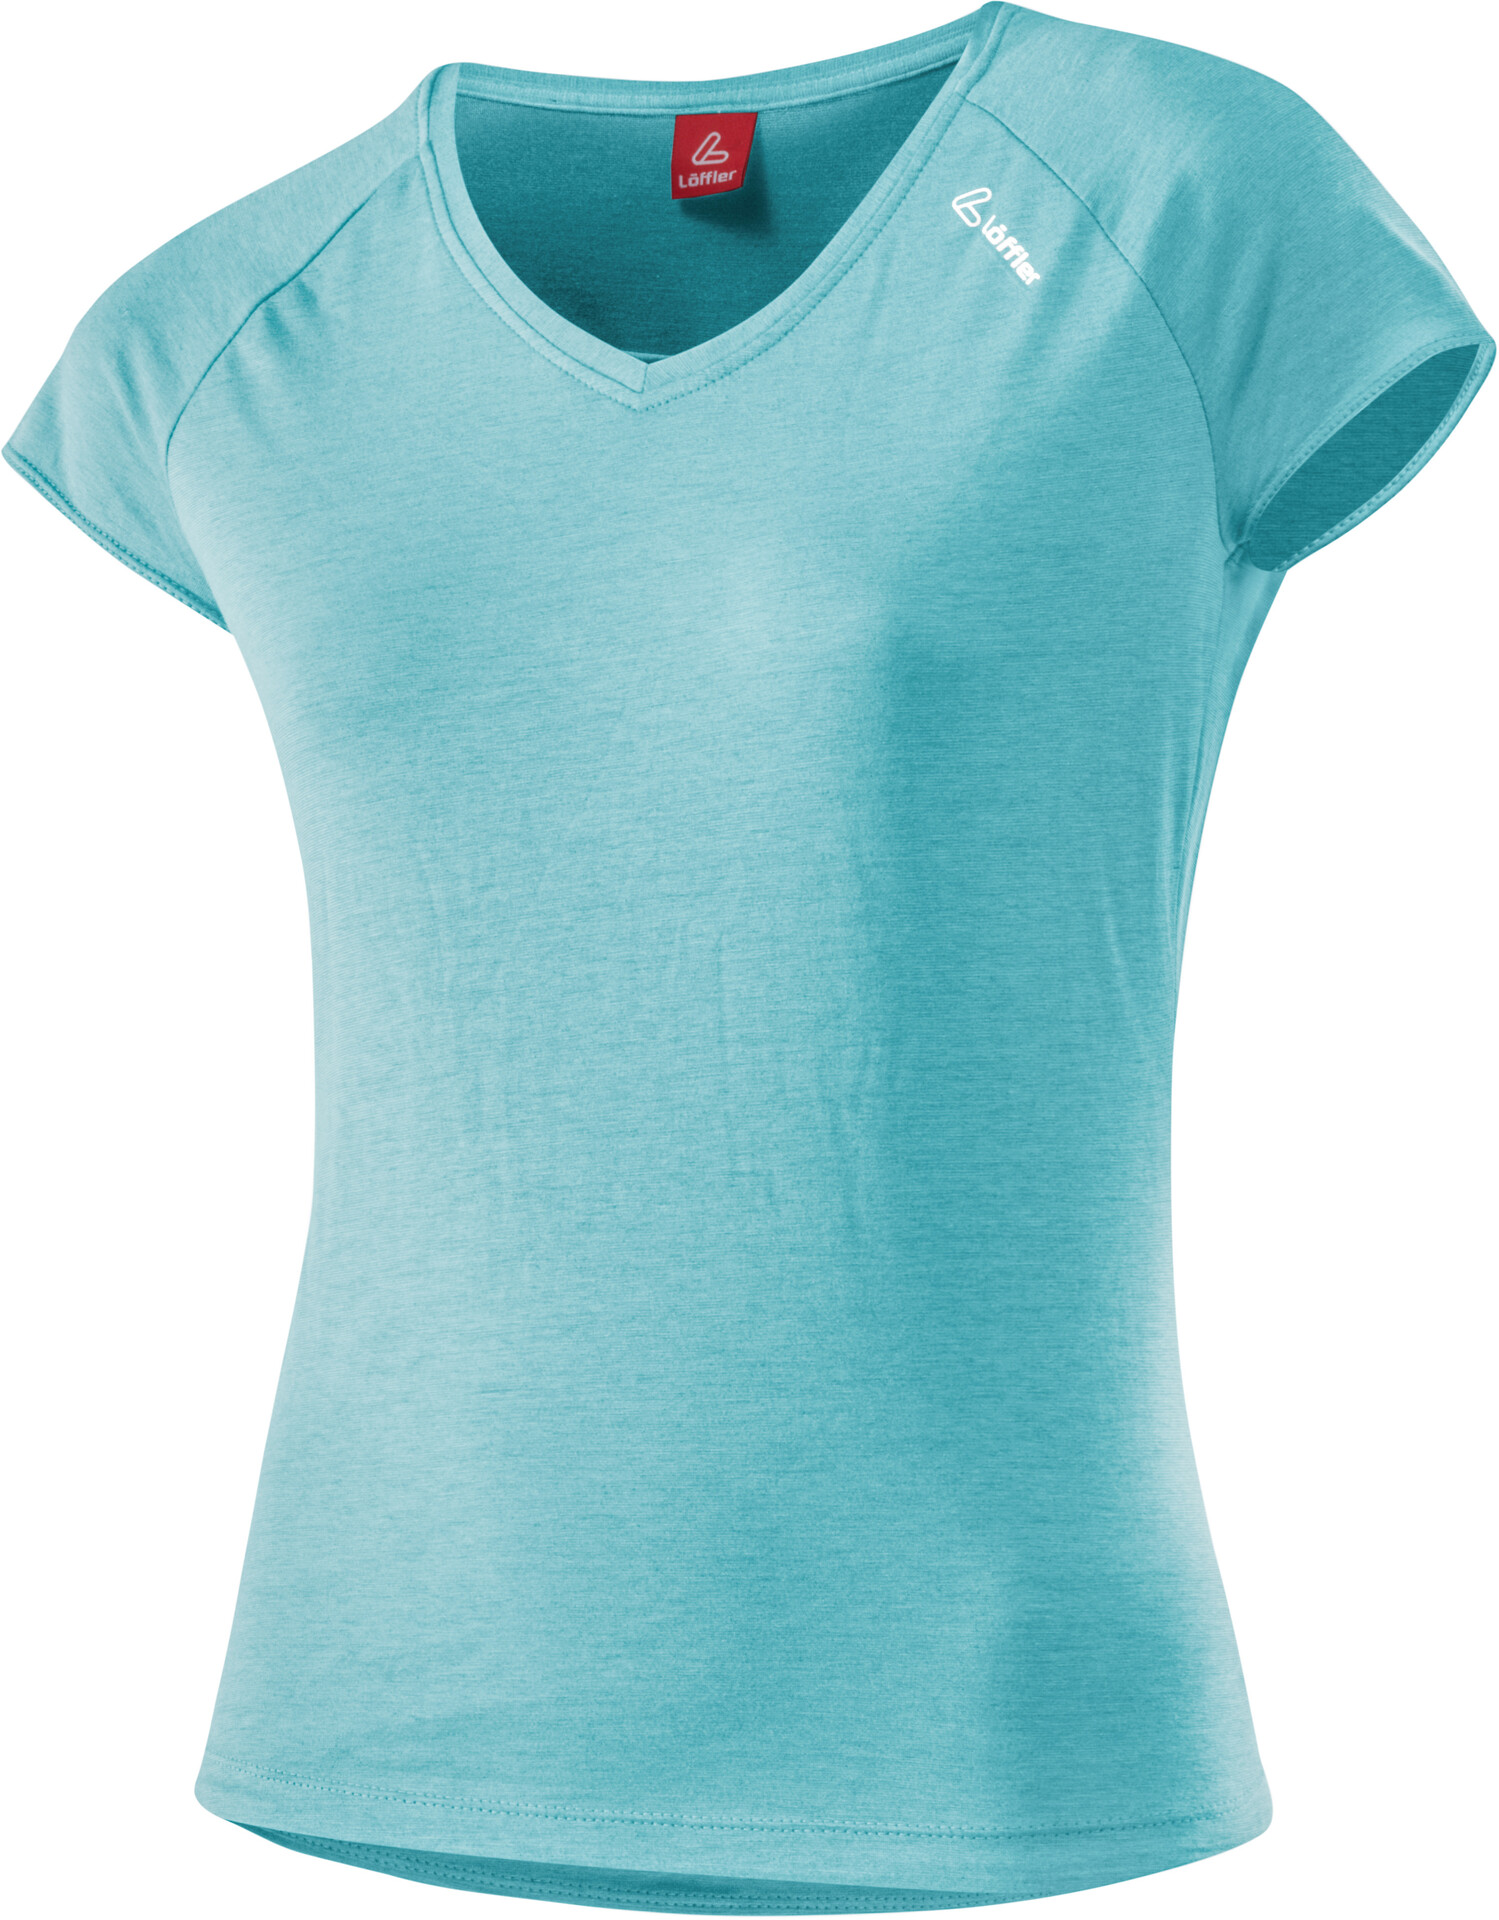 Löffler Transtex Single Fietsshirt Korte Mouwen Dames, angel blue